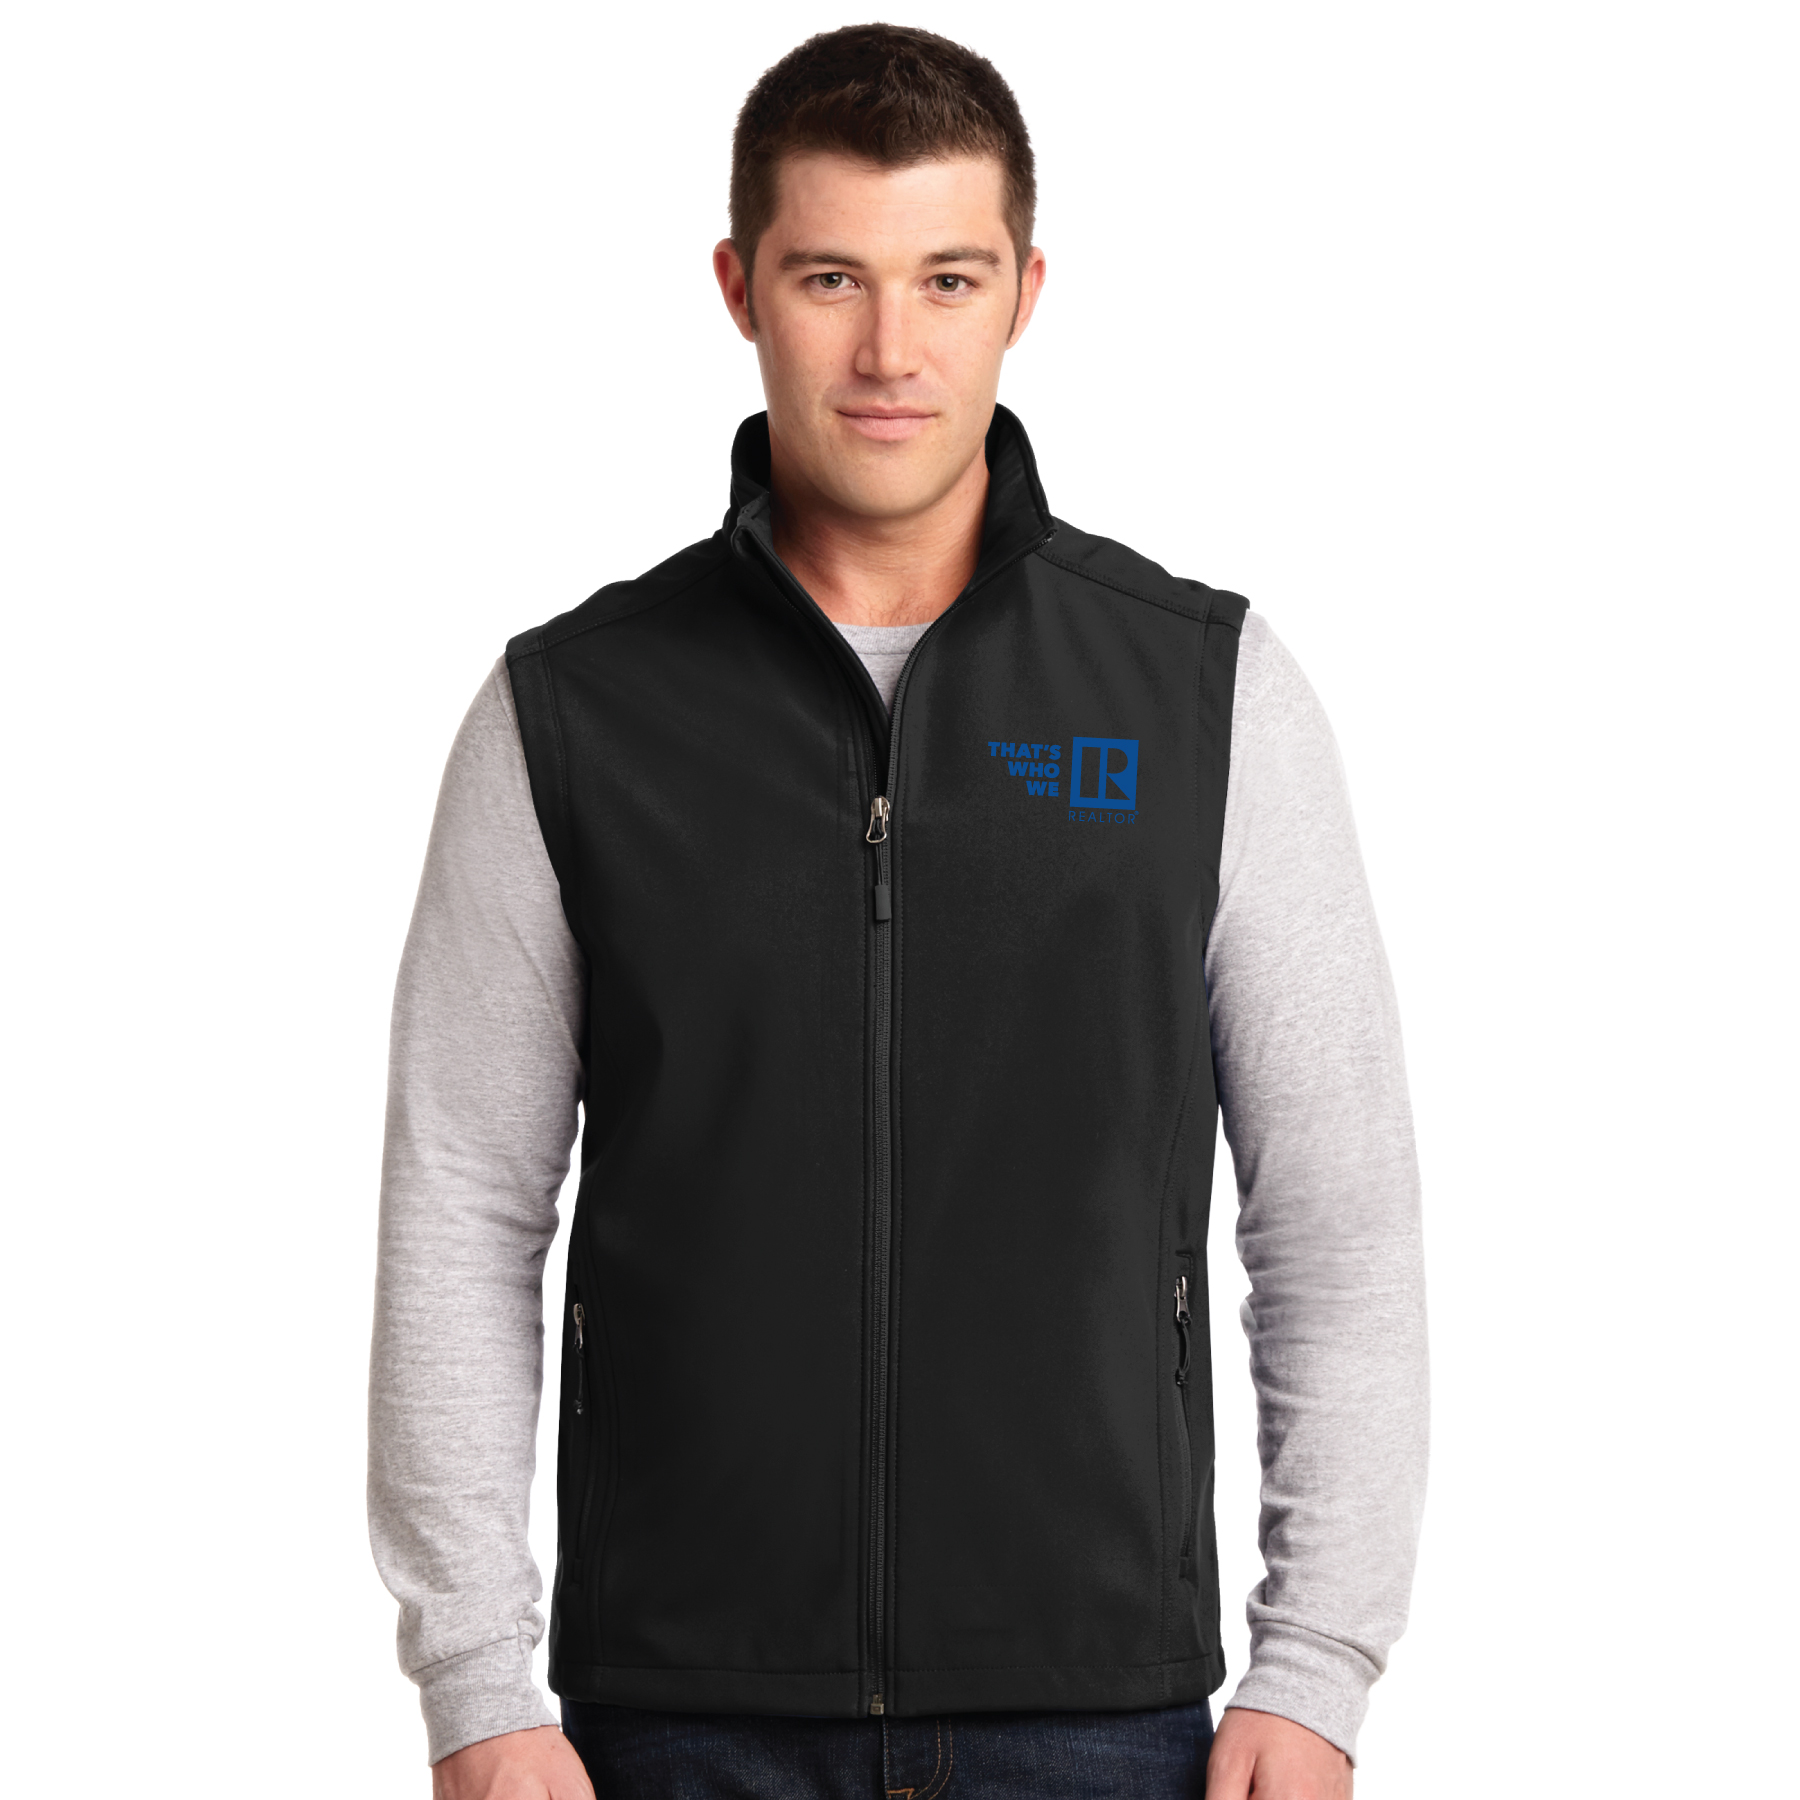 """That's Who We R"" Men's Core Soft Shell Vest twwr,ThatsWhoWeR,That's,TWWR,ThatWho,That'sWho,Twwr,Thats,Whos,We,Ares,Twwr,Thats,Whos,Wes,Ares,soft, shells, vests, mens"